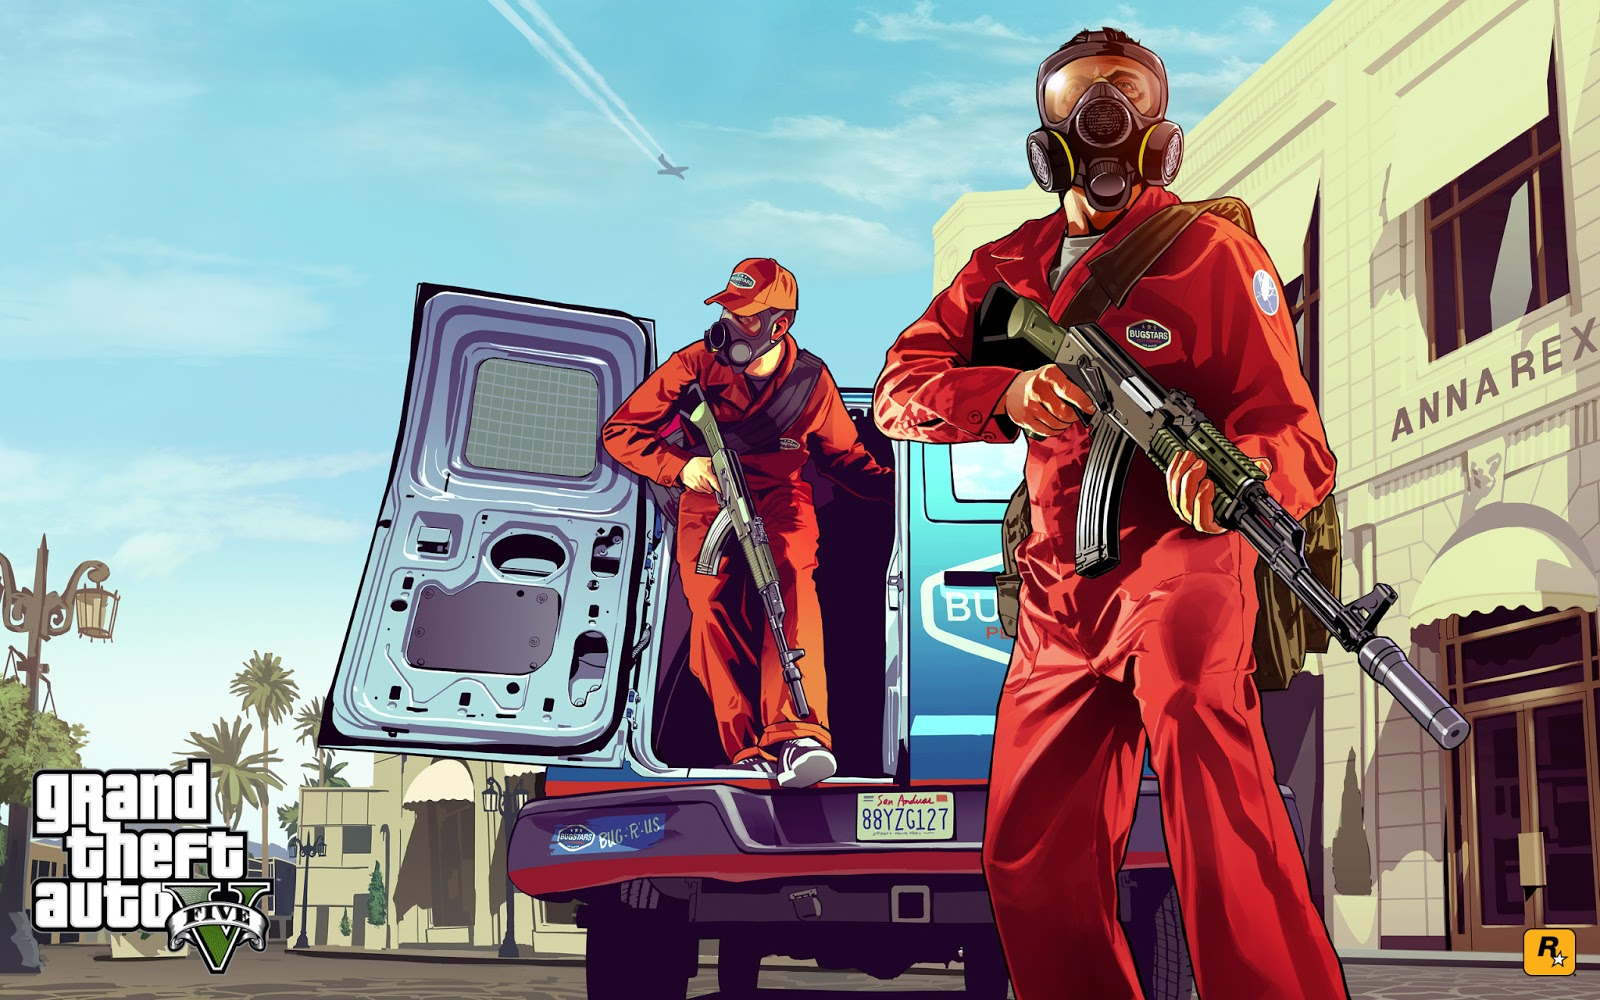 grand theft auto gta v widejpg 1600x1000